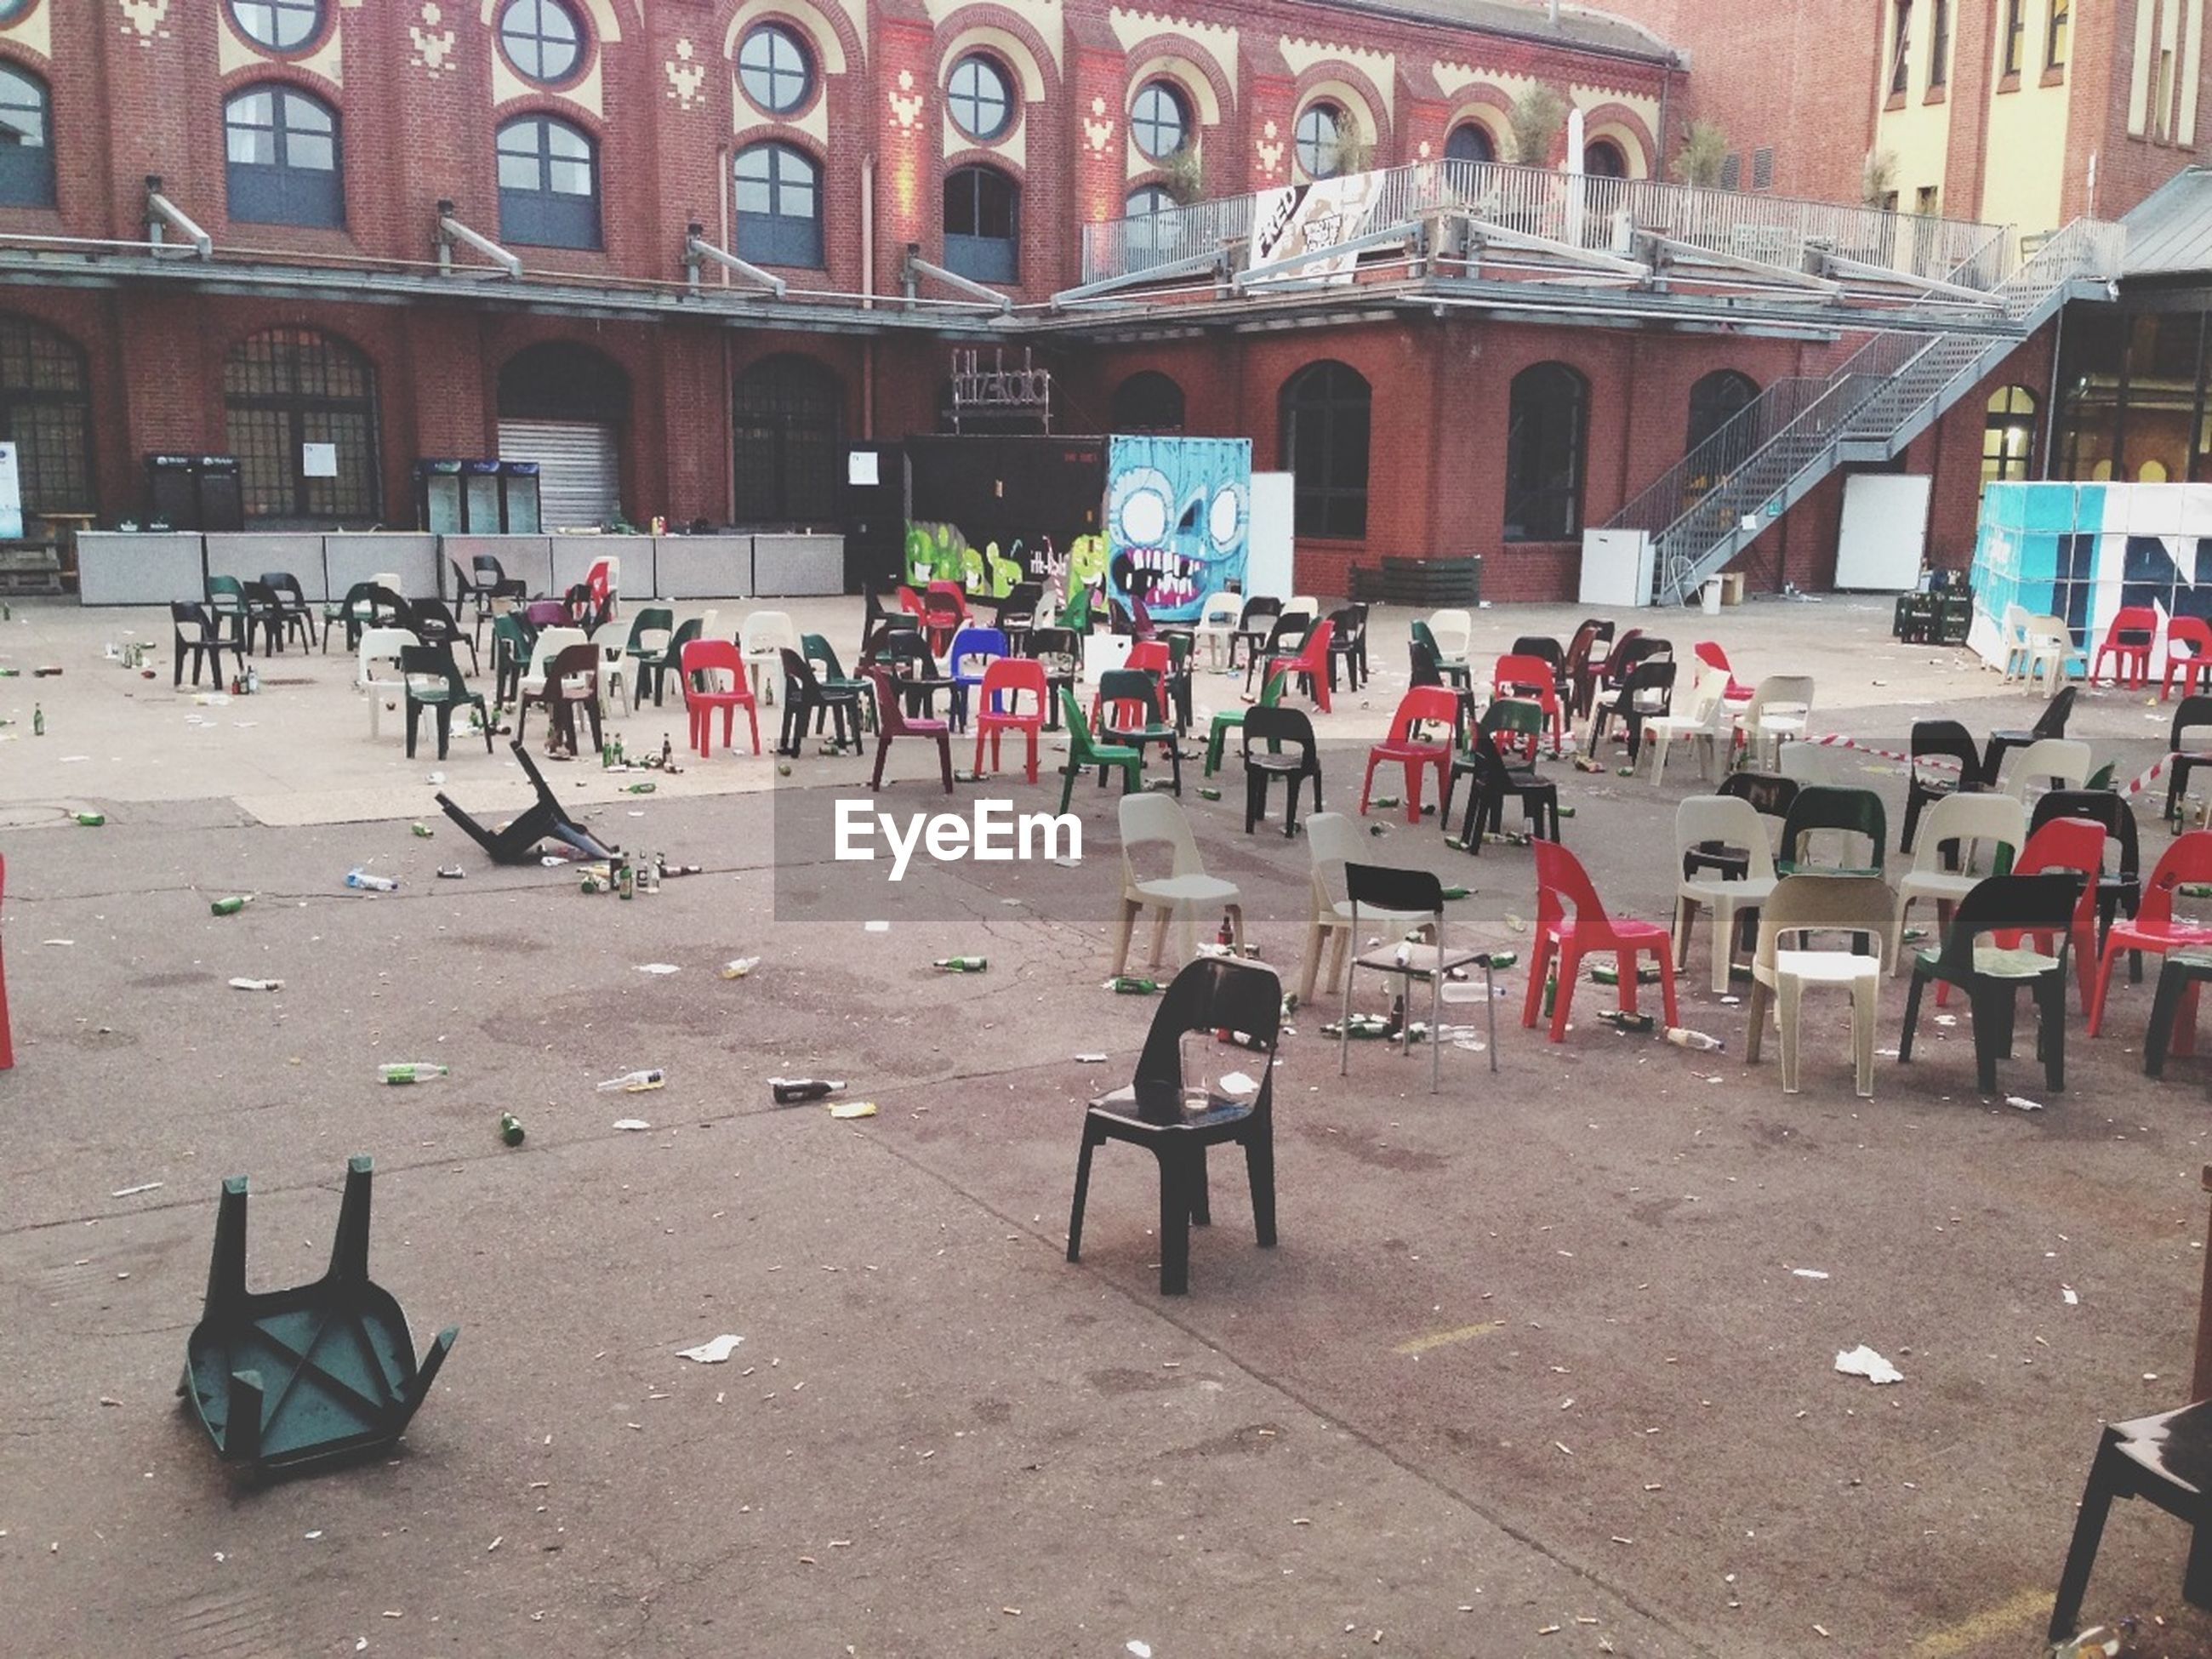 Messy town square with chairs and bottles